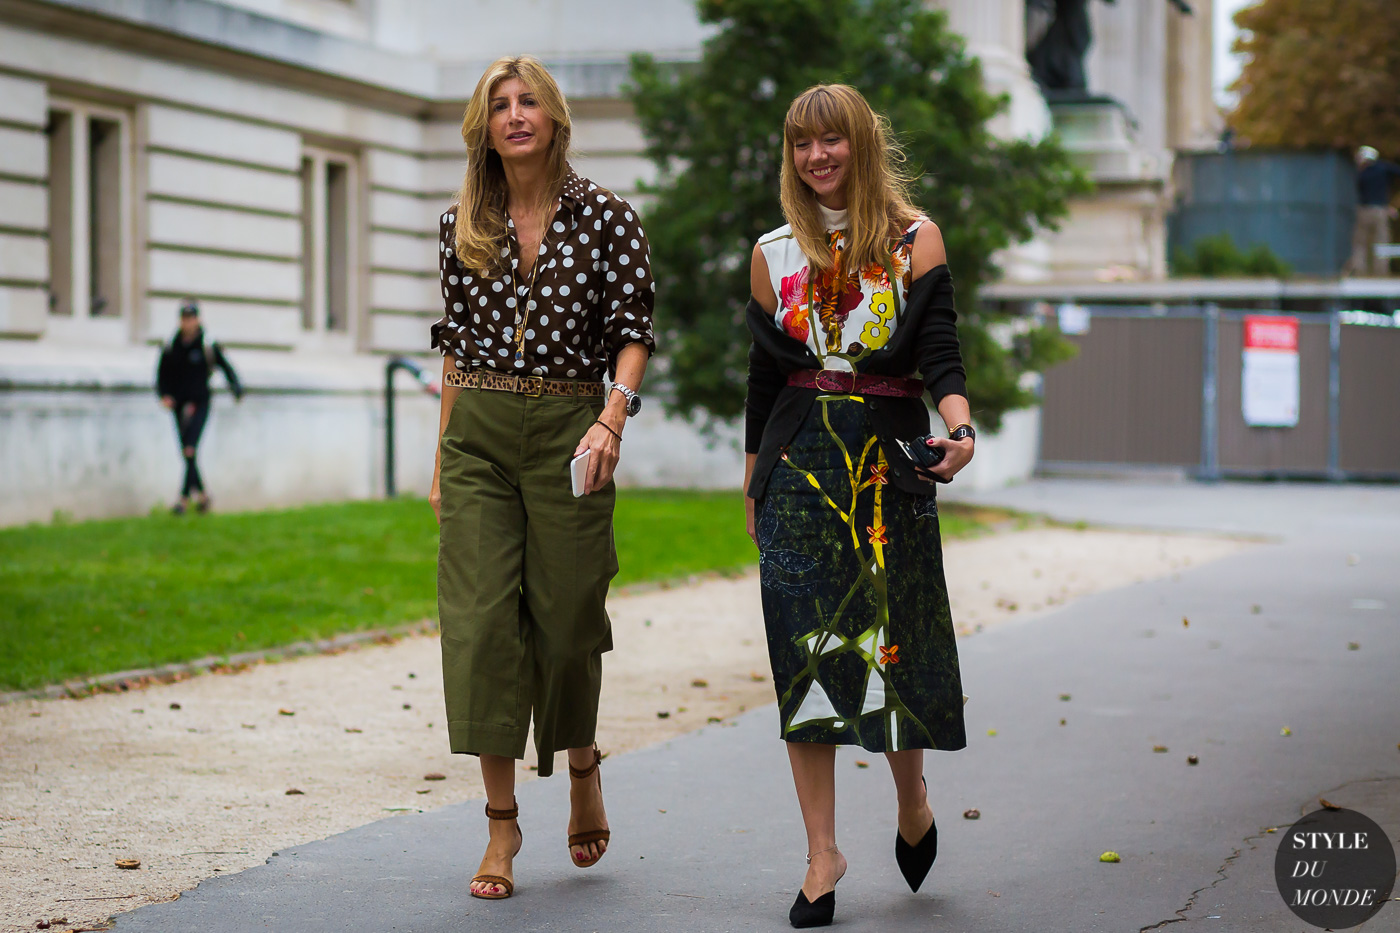 sarah-rutson-and-lisa-aiken-by-styledumonde-street-style-fashion-photography